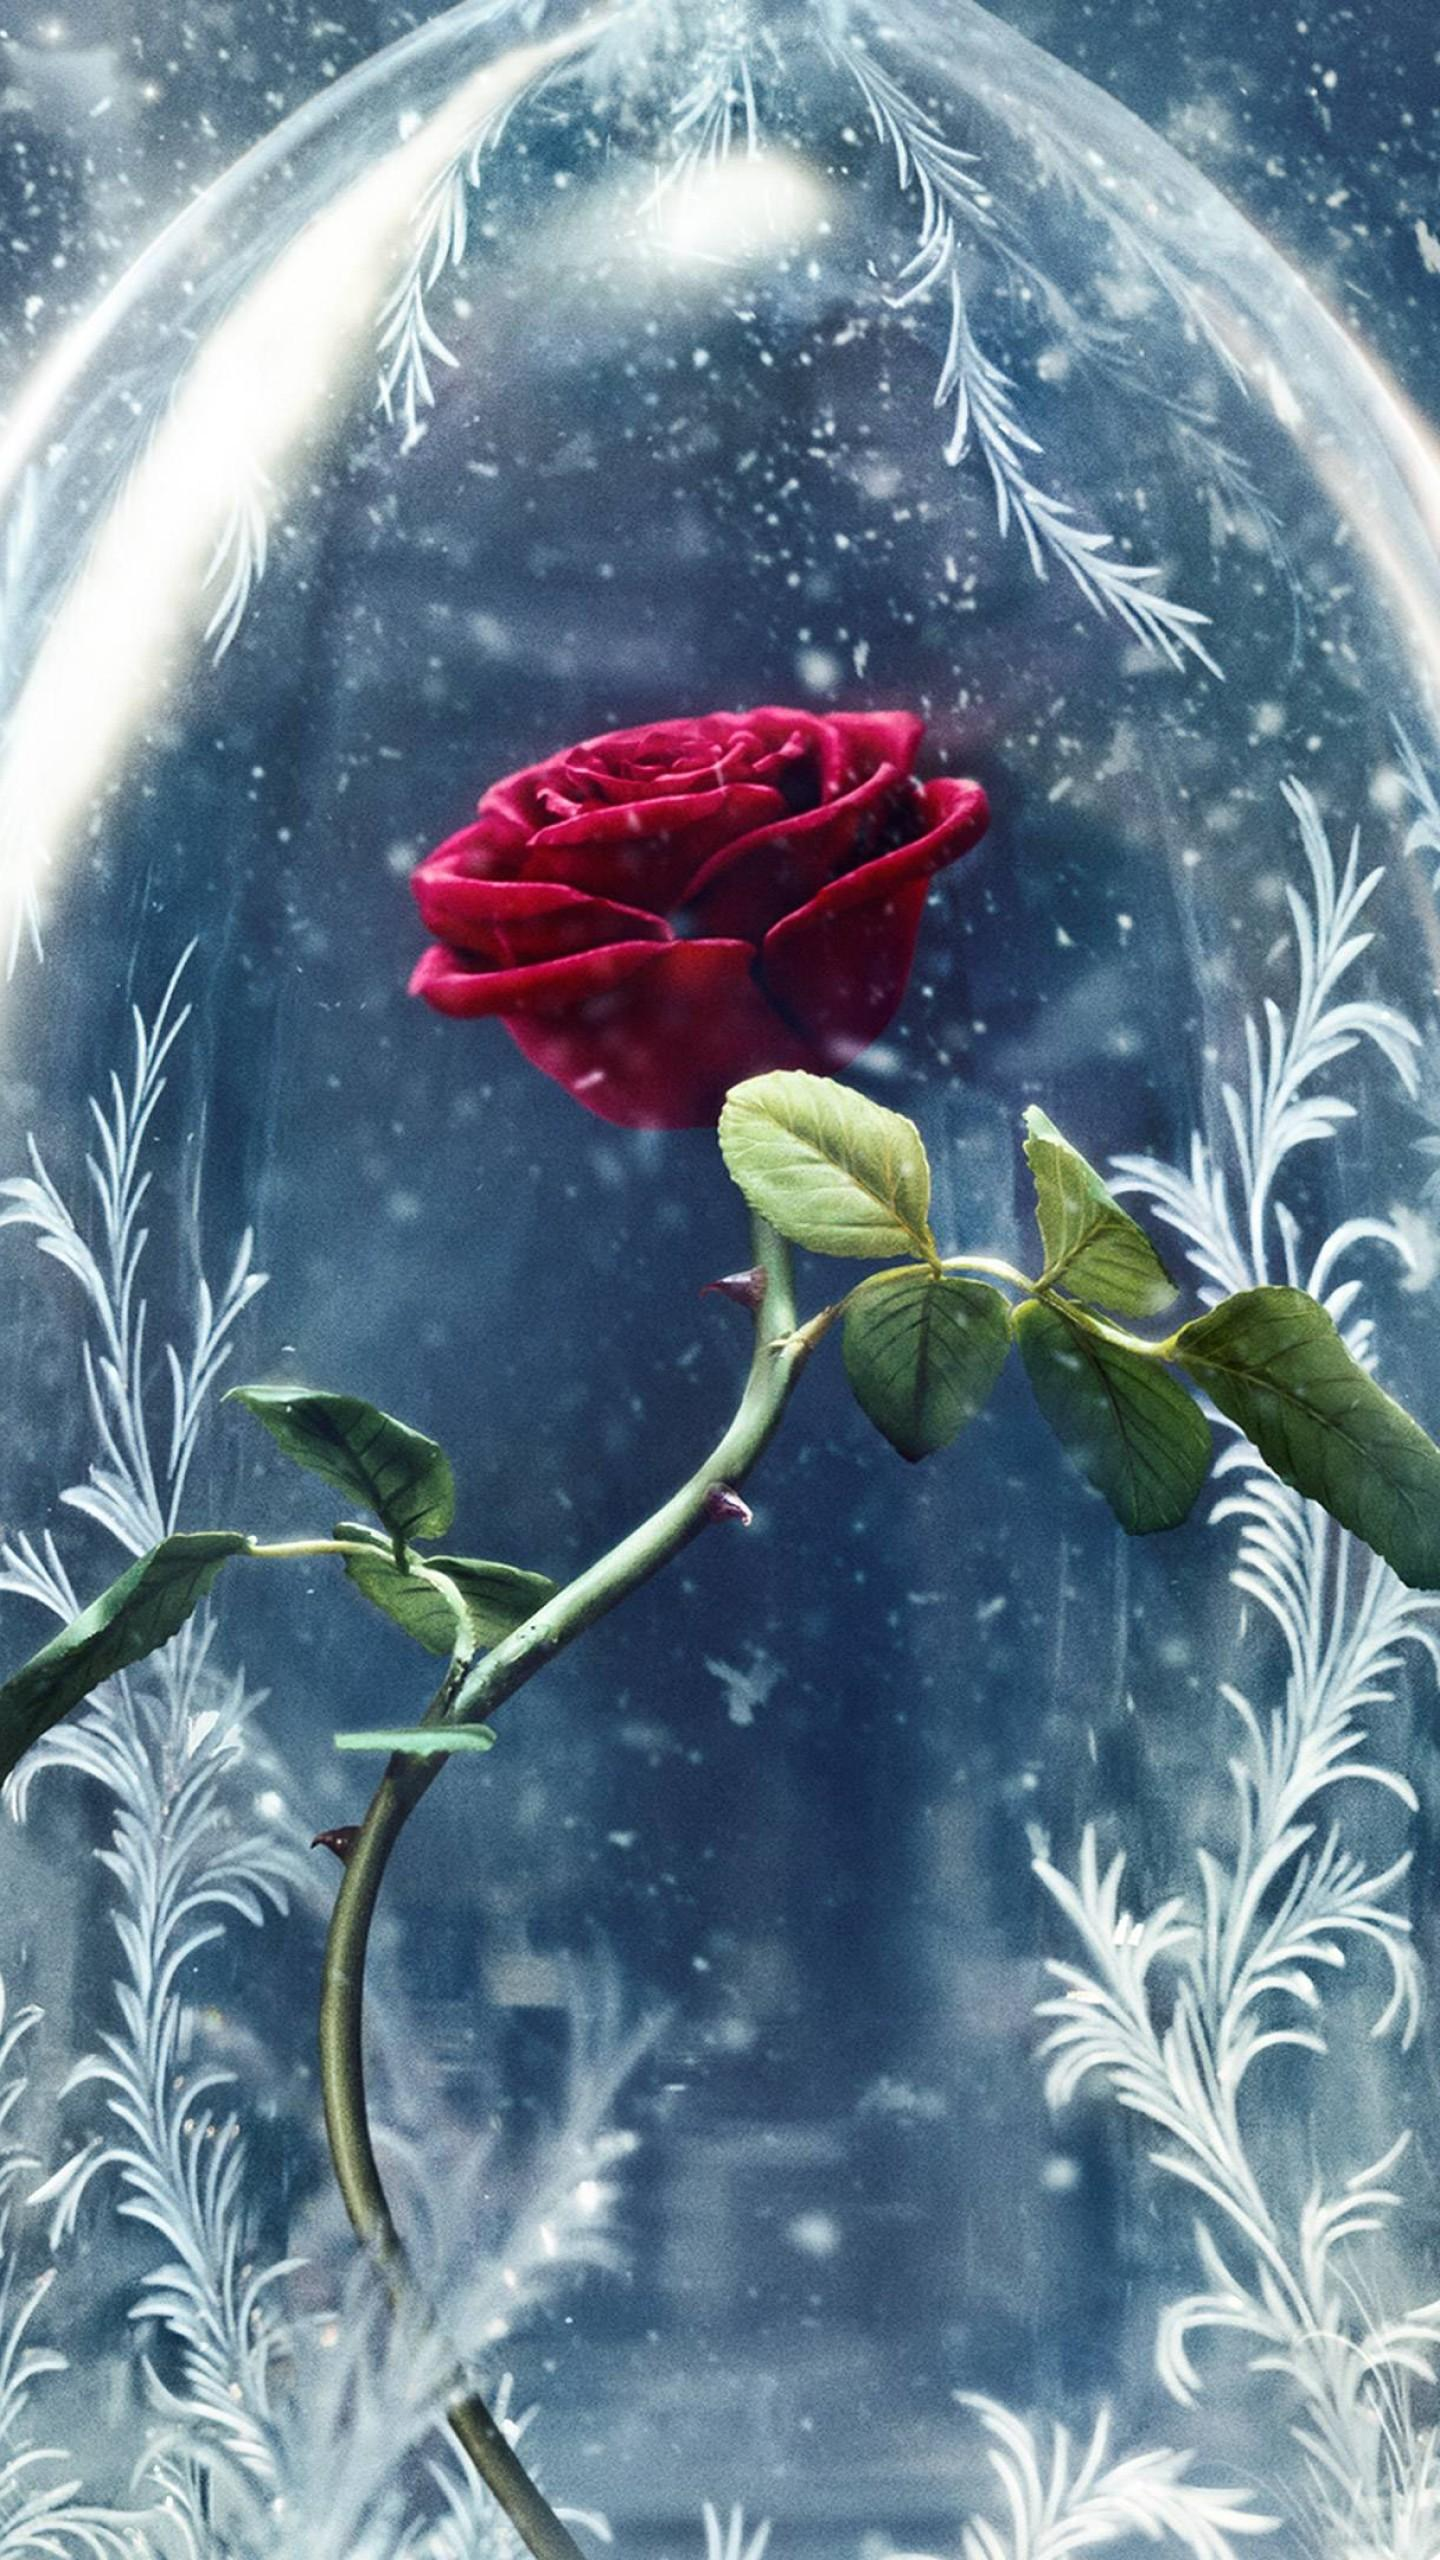 Beauty And The Beast Rose Wallpapers - Wallpaper Cave